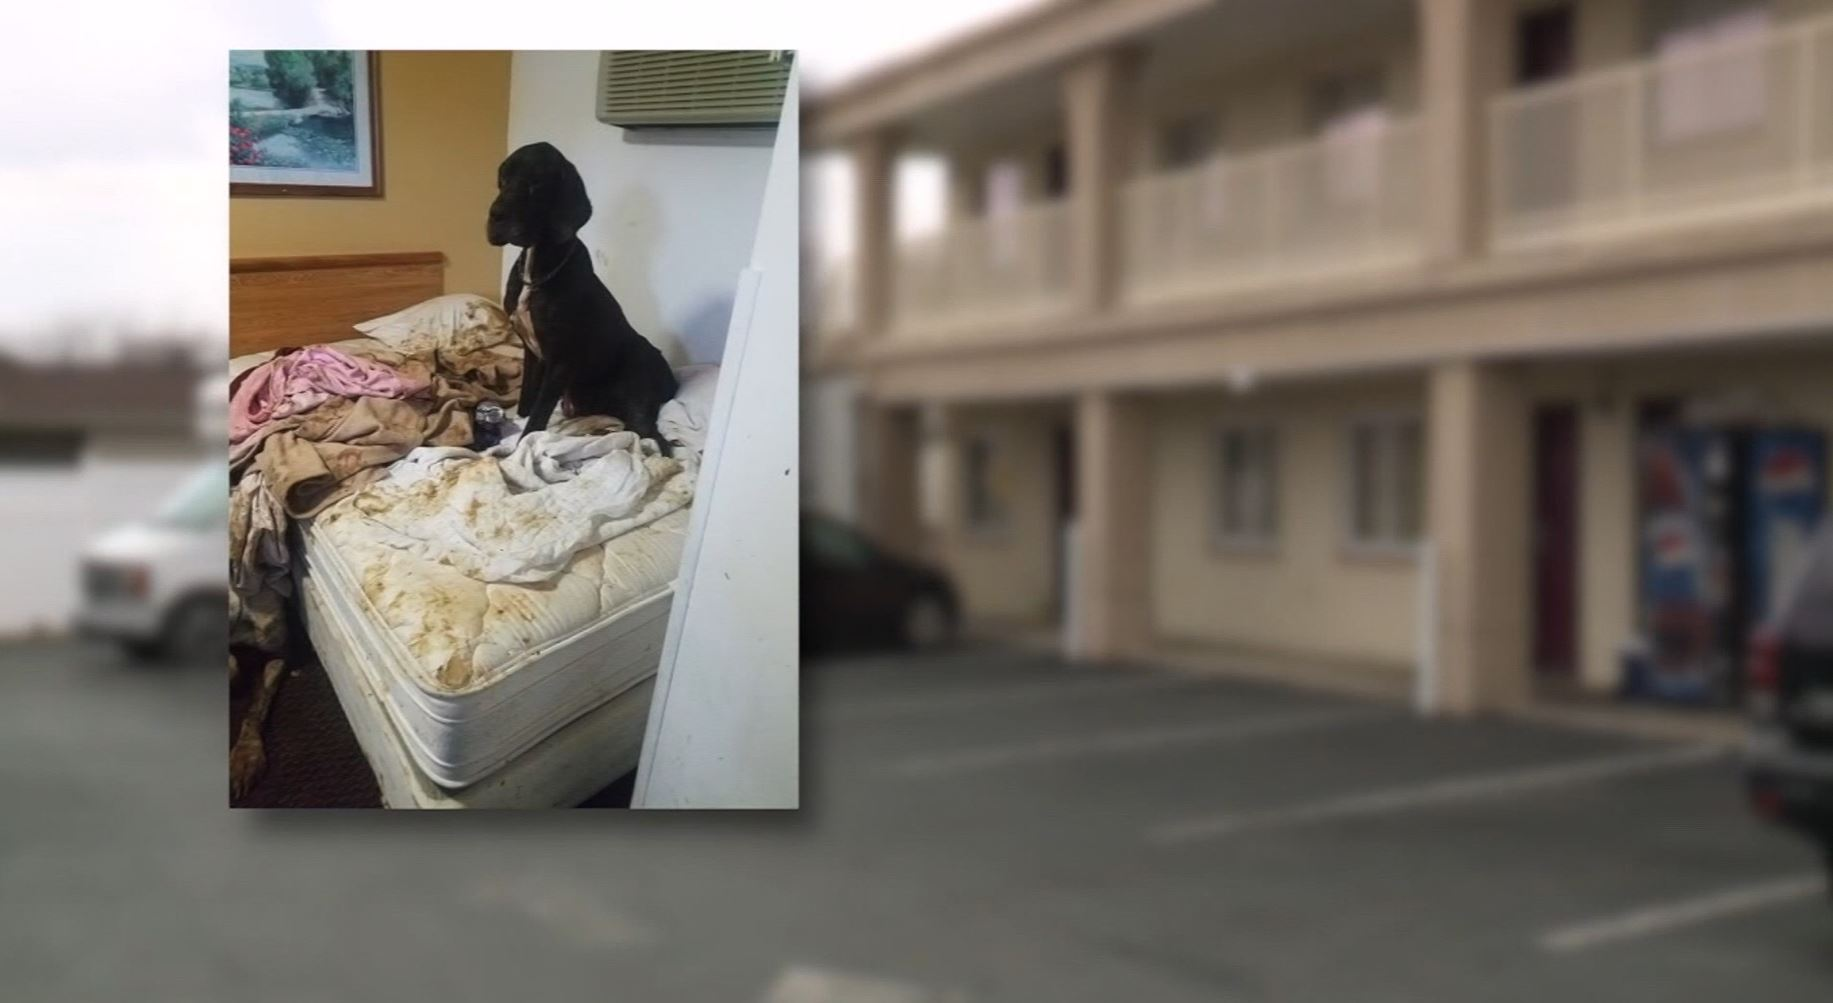 Police discover 3-year-old boy covered in dog feces in a hotel room he shared with his mother and 3 great danes (WEWS via CNN Newsource)